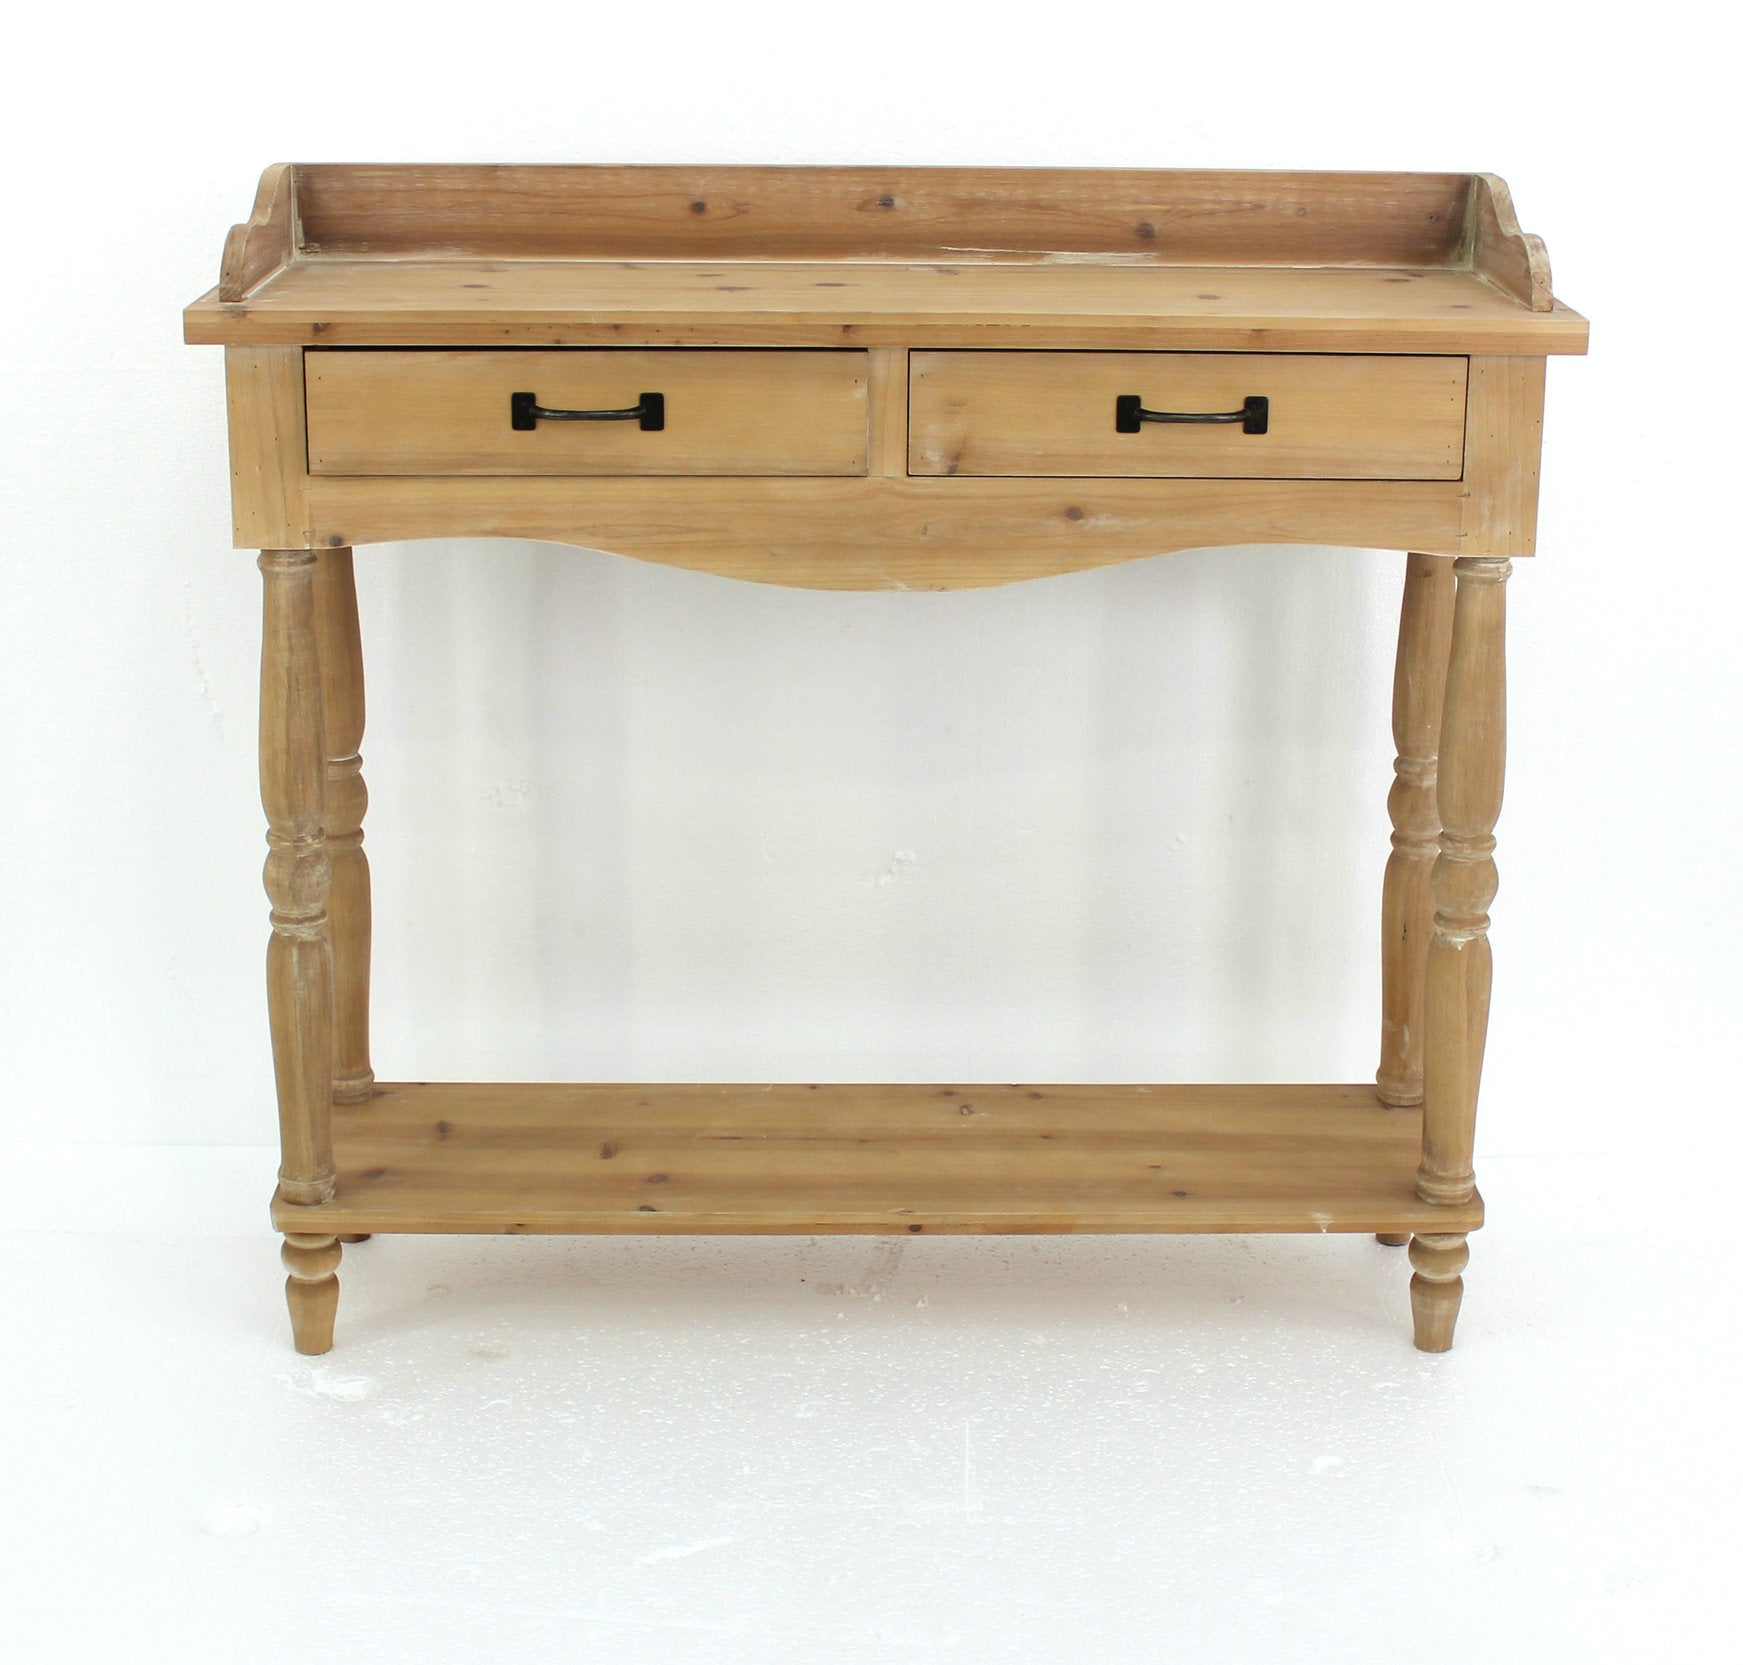 "11.75"" x 42"" x 38.5"" Natural, 2 Drawer, Rustic, Unfinished Dressing - End Table"